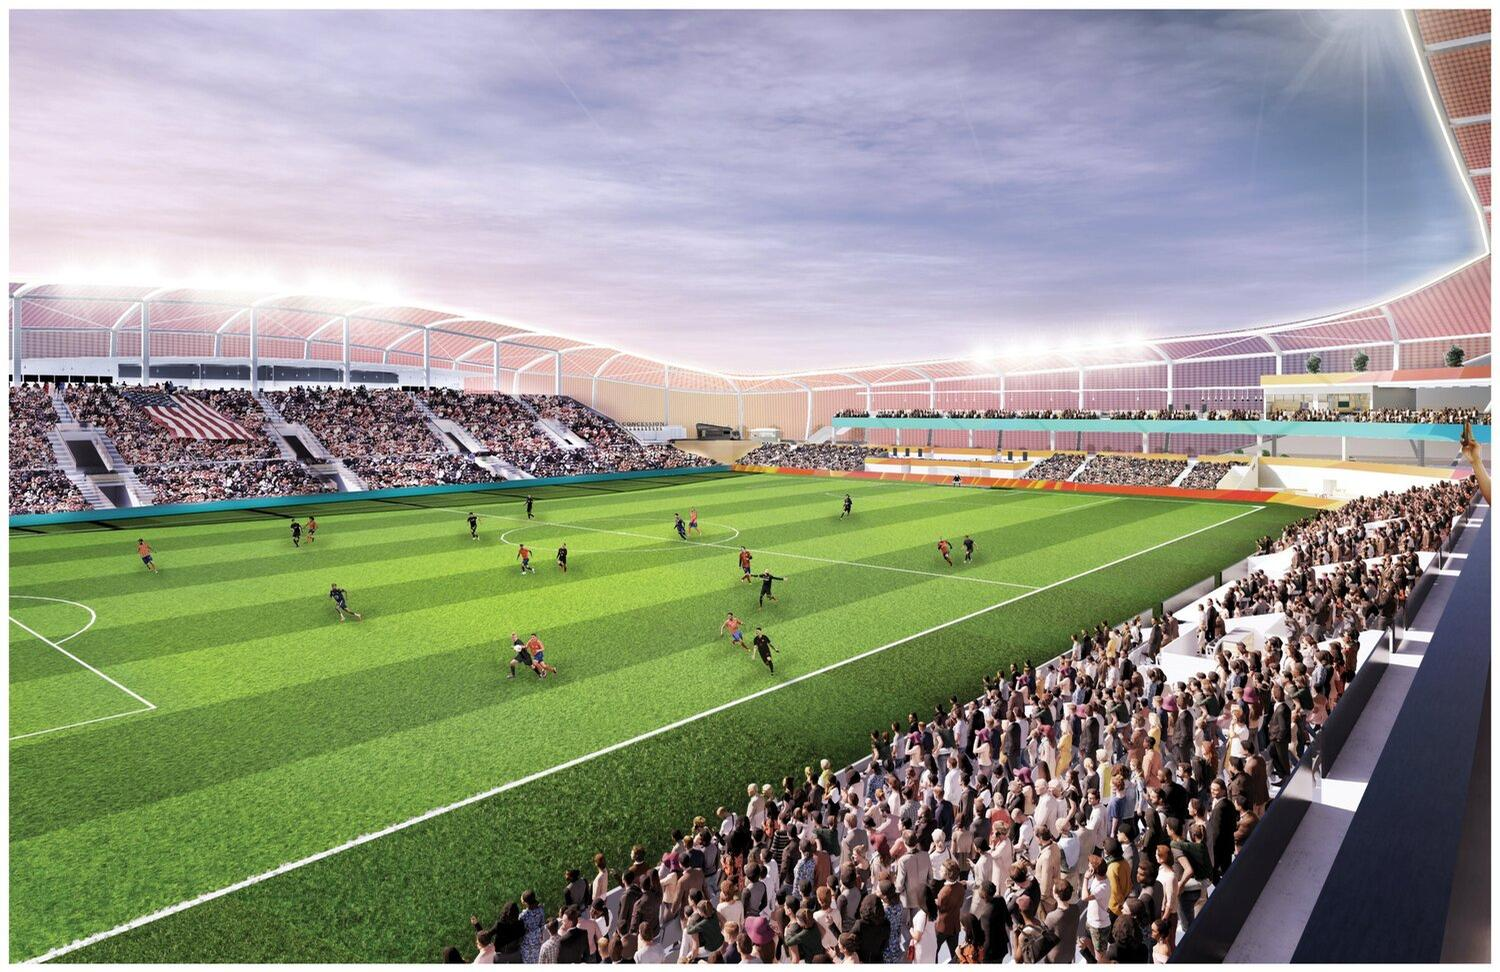 The design proposes an initial 3,000 capacity stadium that can be increased in size to a maximum capacity of 10,000 / Pendulum